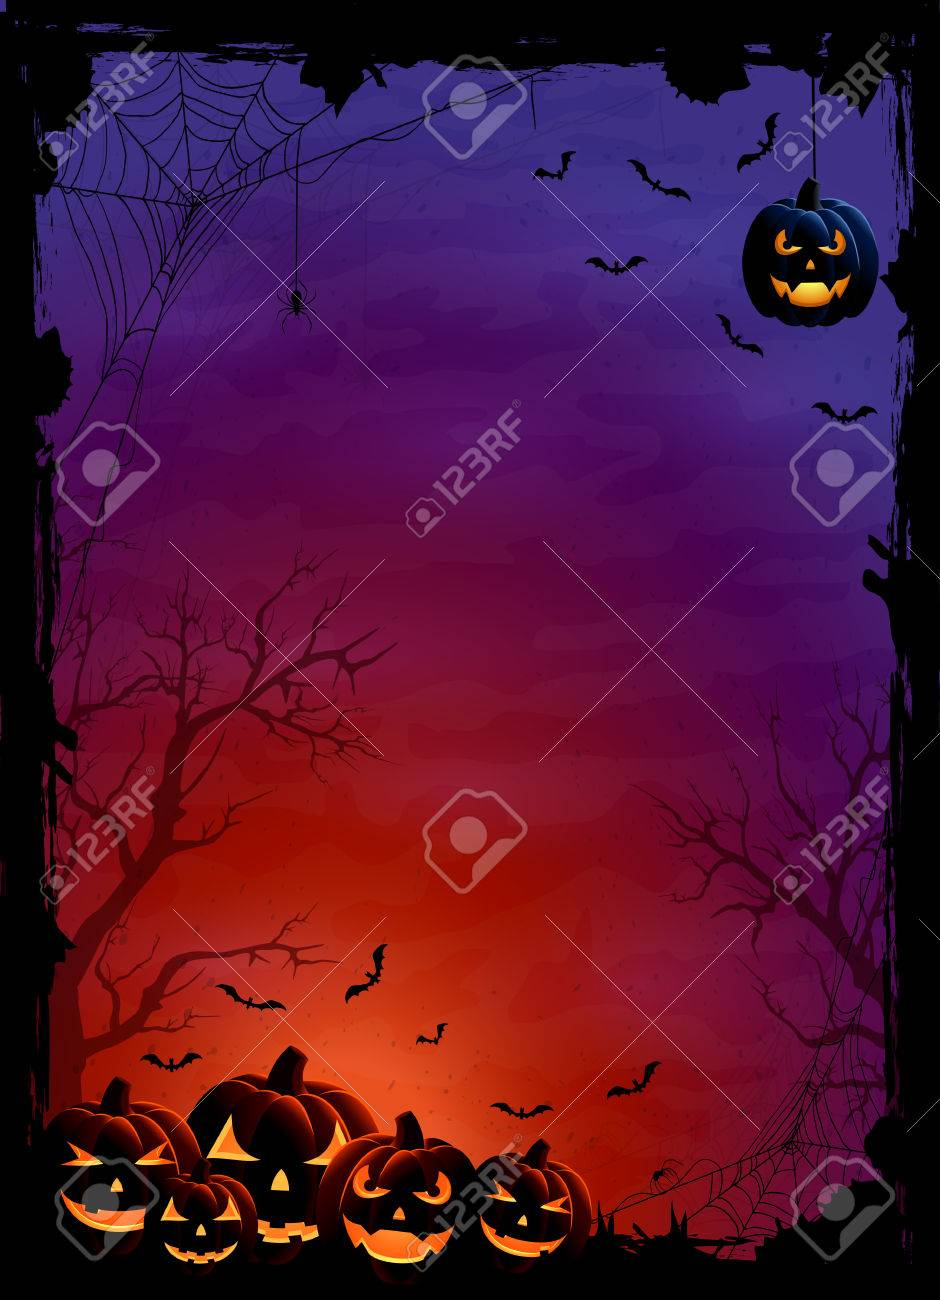 Halloween theme with pumpkins, bats and spiders on night background, illustration. - 45303330